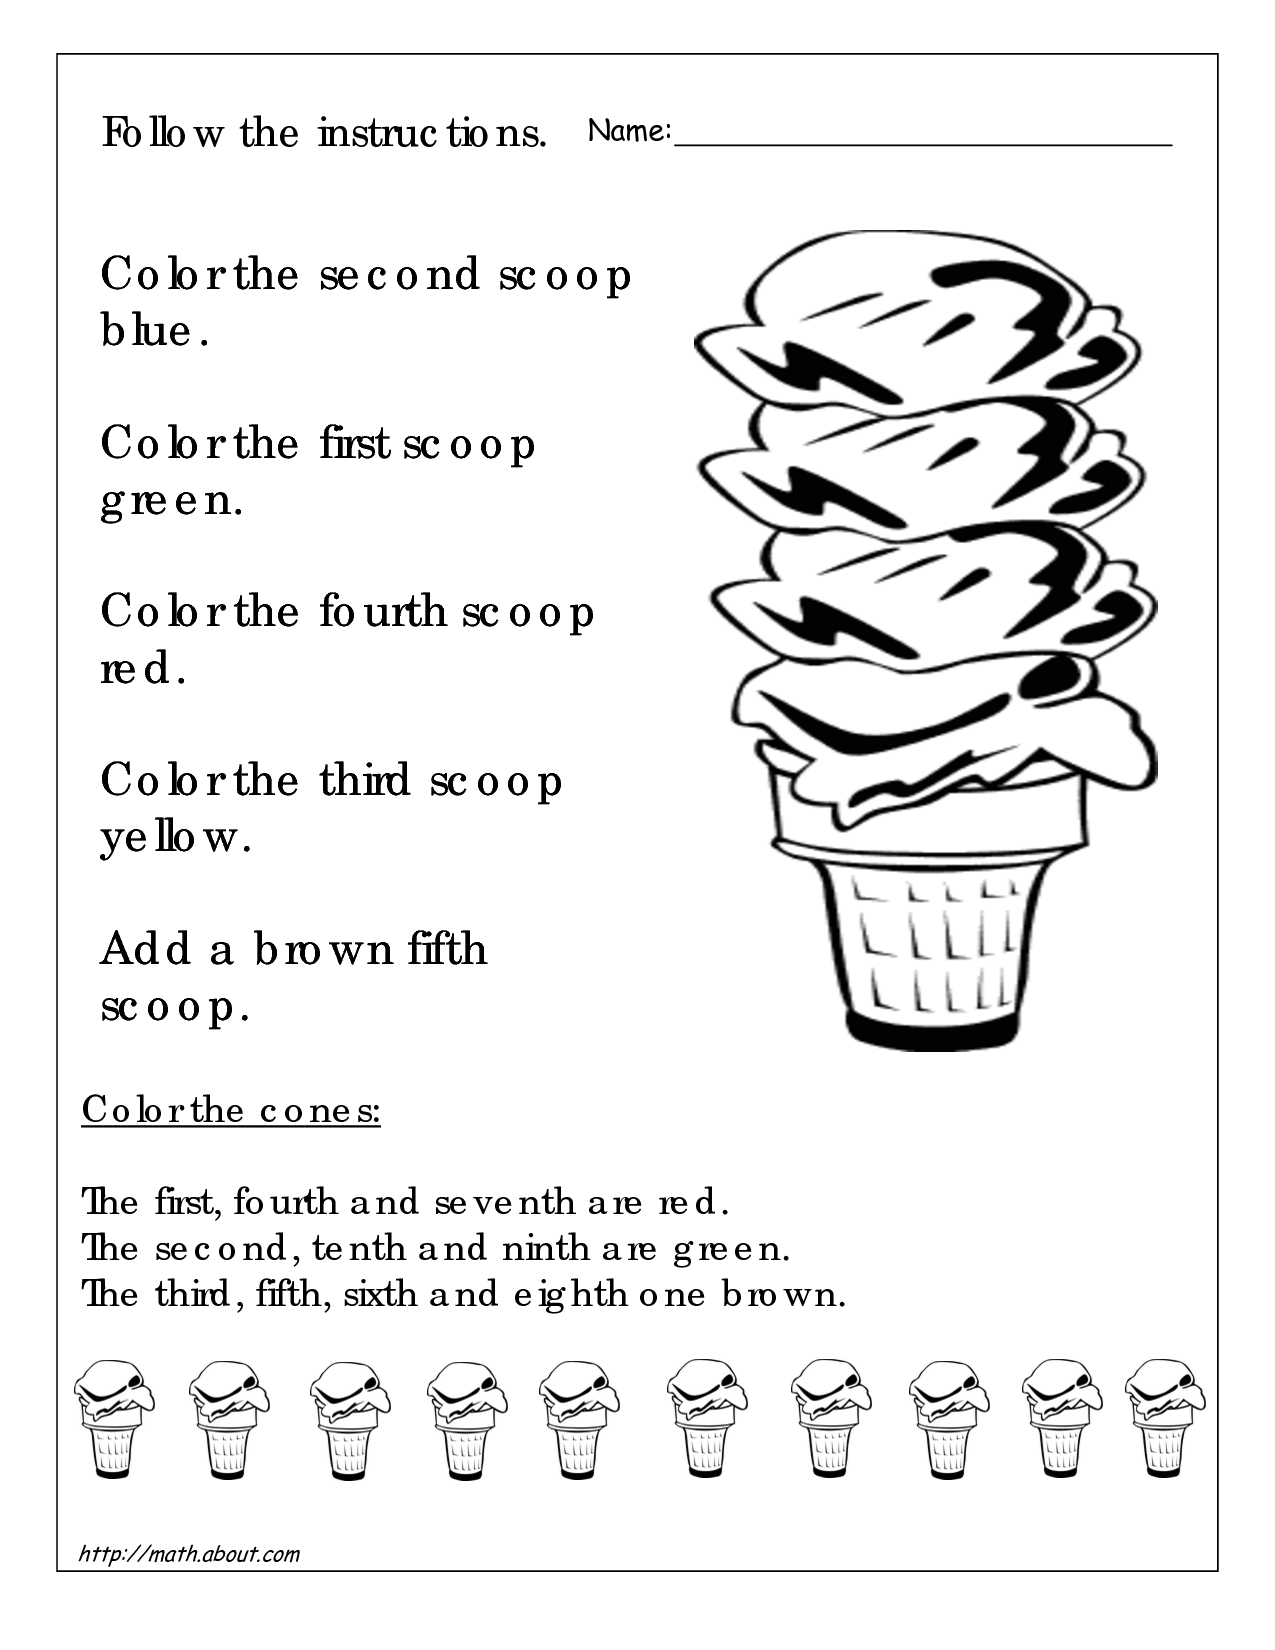 Ogy Worksheet For 3rd Grade